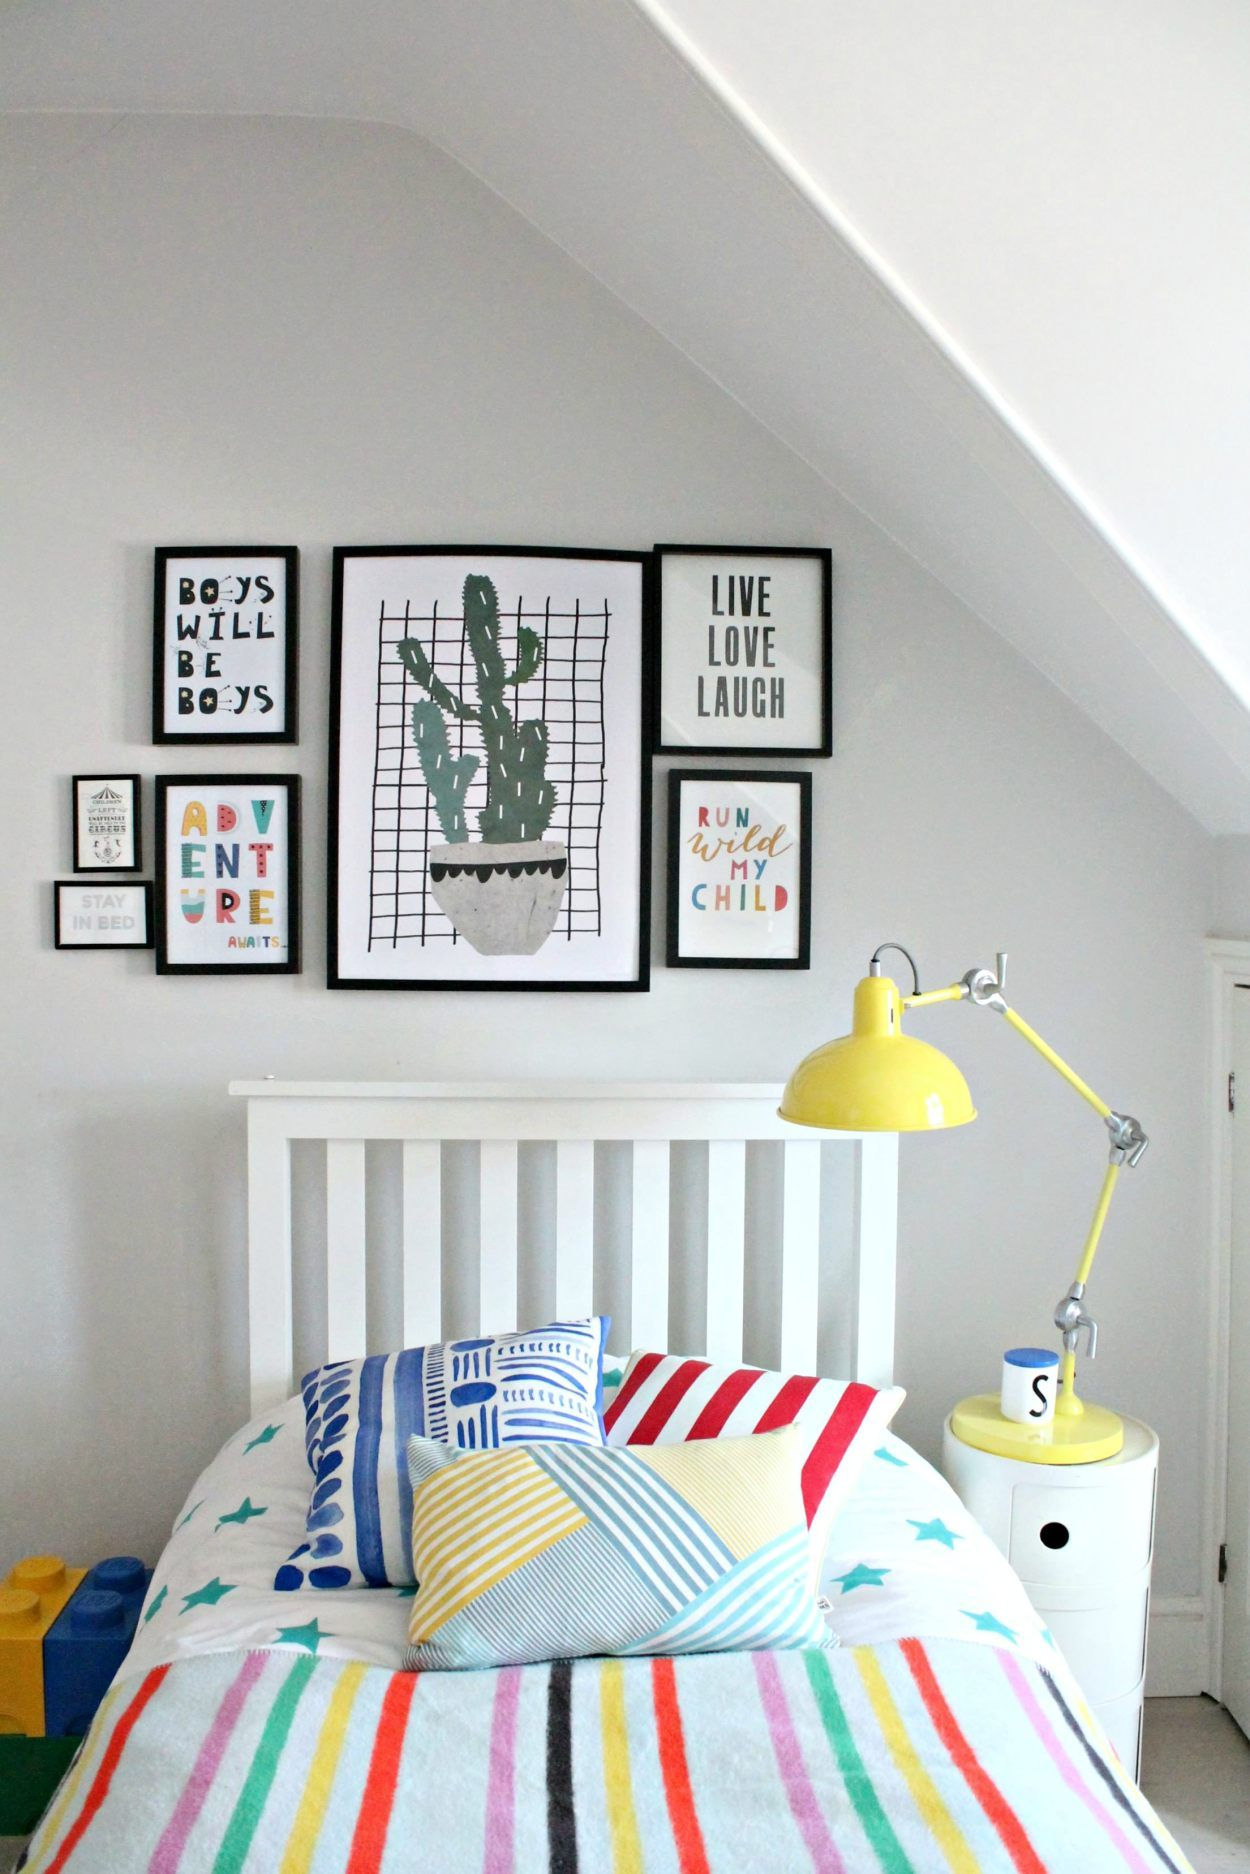 style a kid s room on a budget 6 ways best of pinterest on fast and easy ways to refresh your home on a budget id=41789